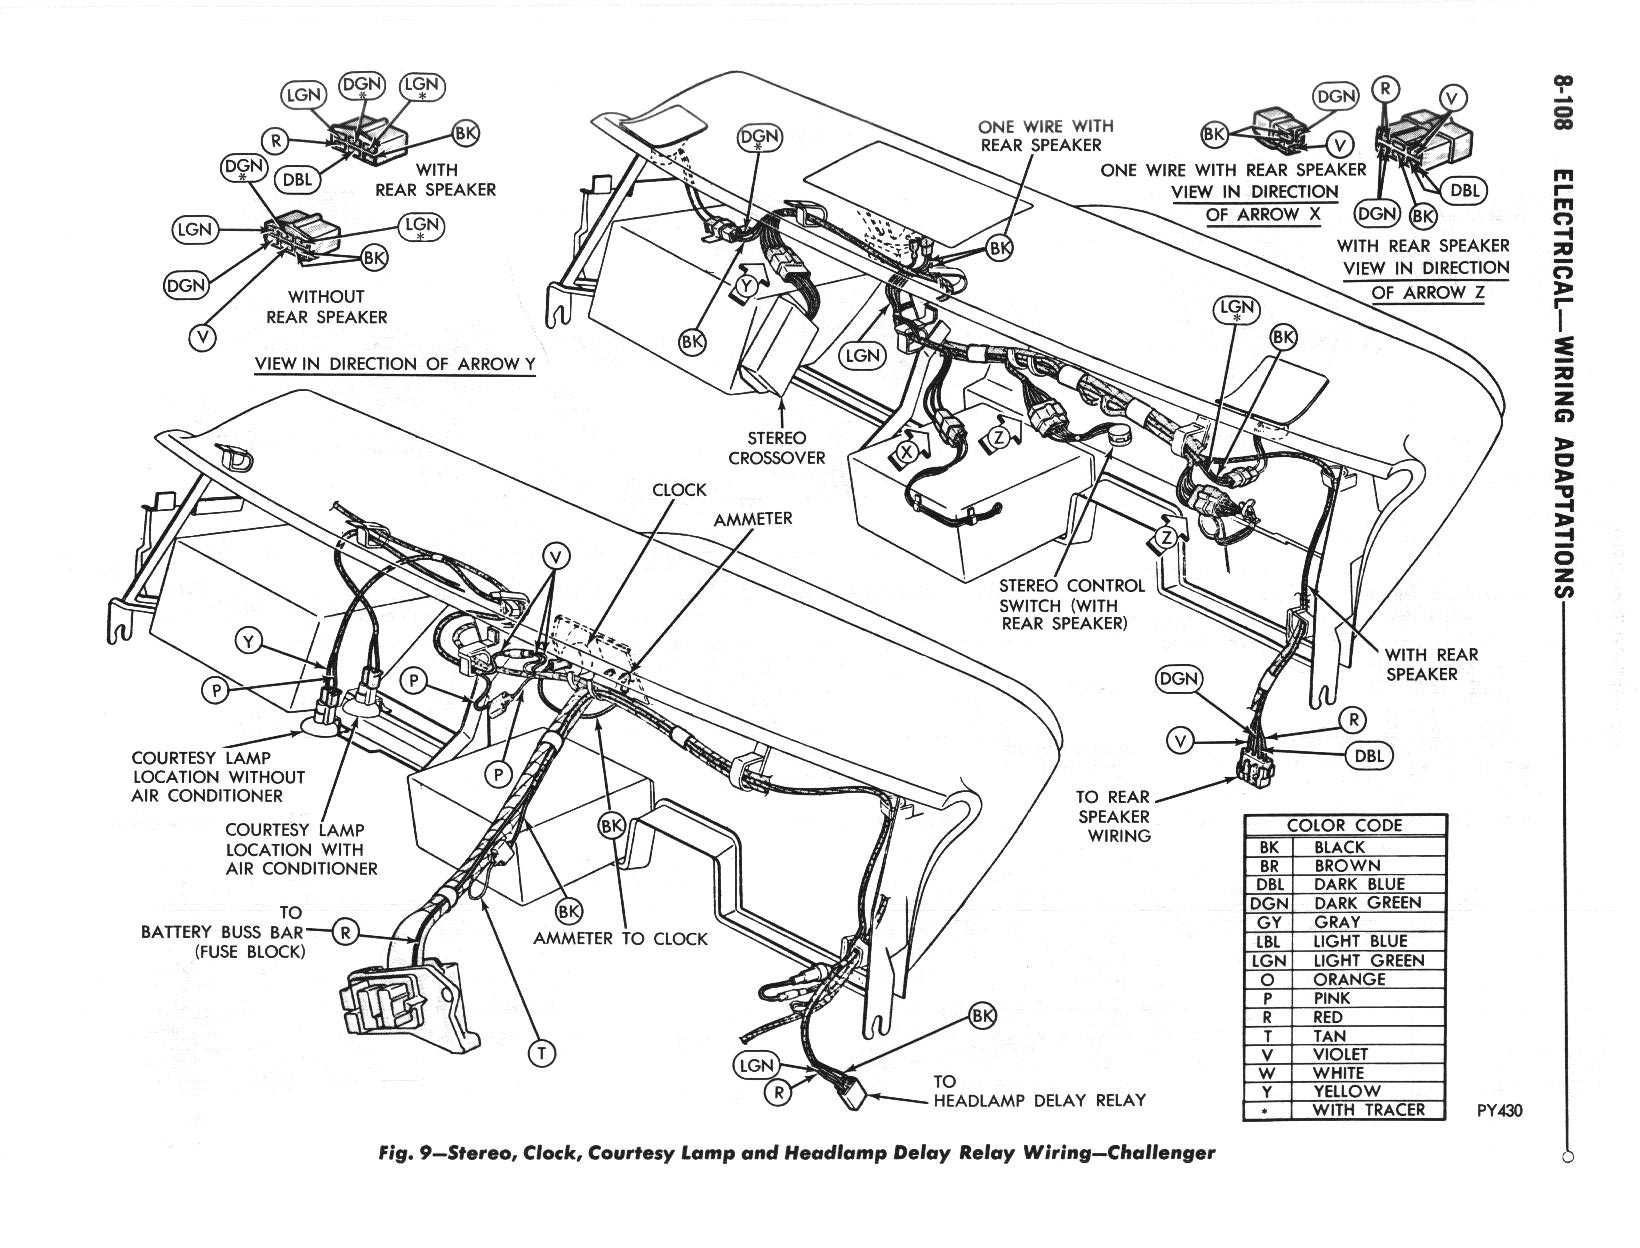 HY_3108] Dodge Challenger Wiring Harness Wiring Diagram